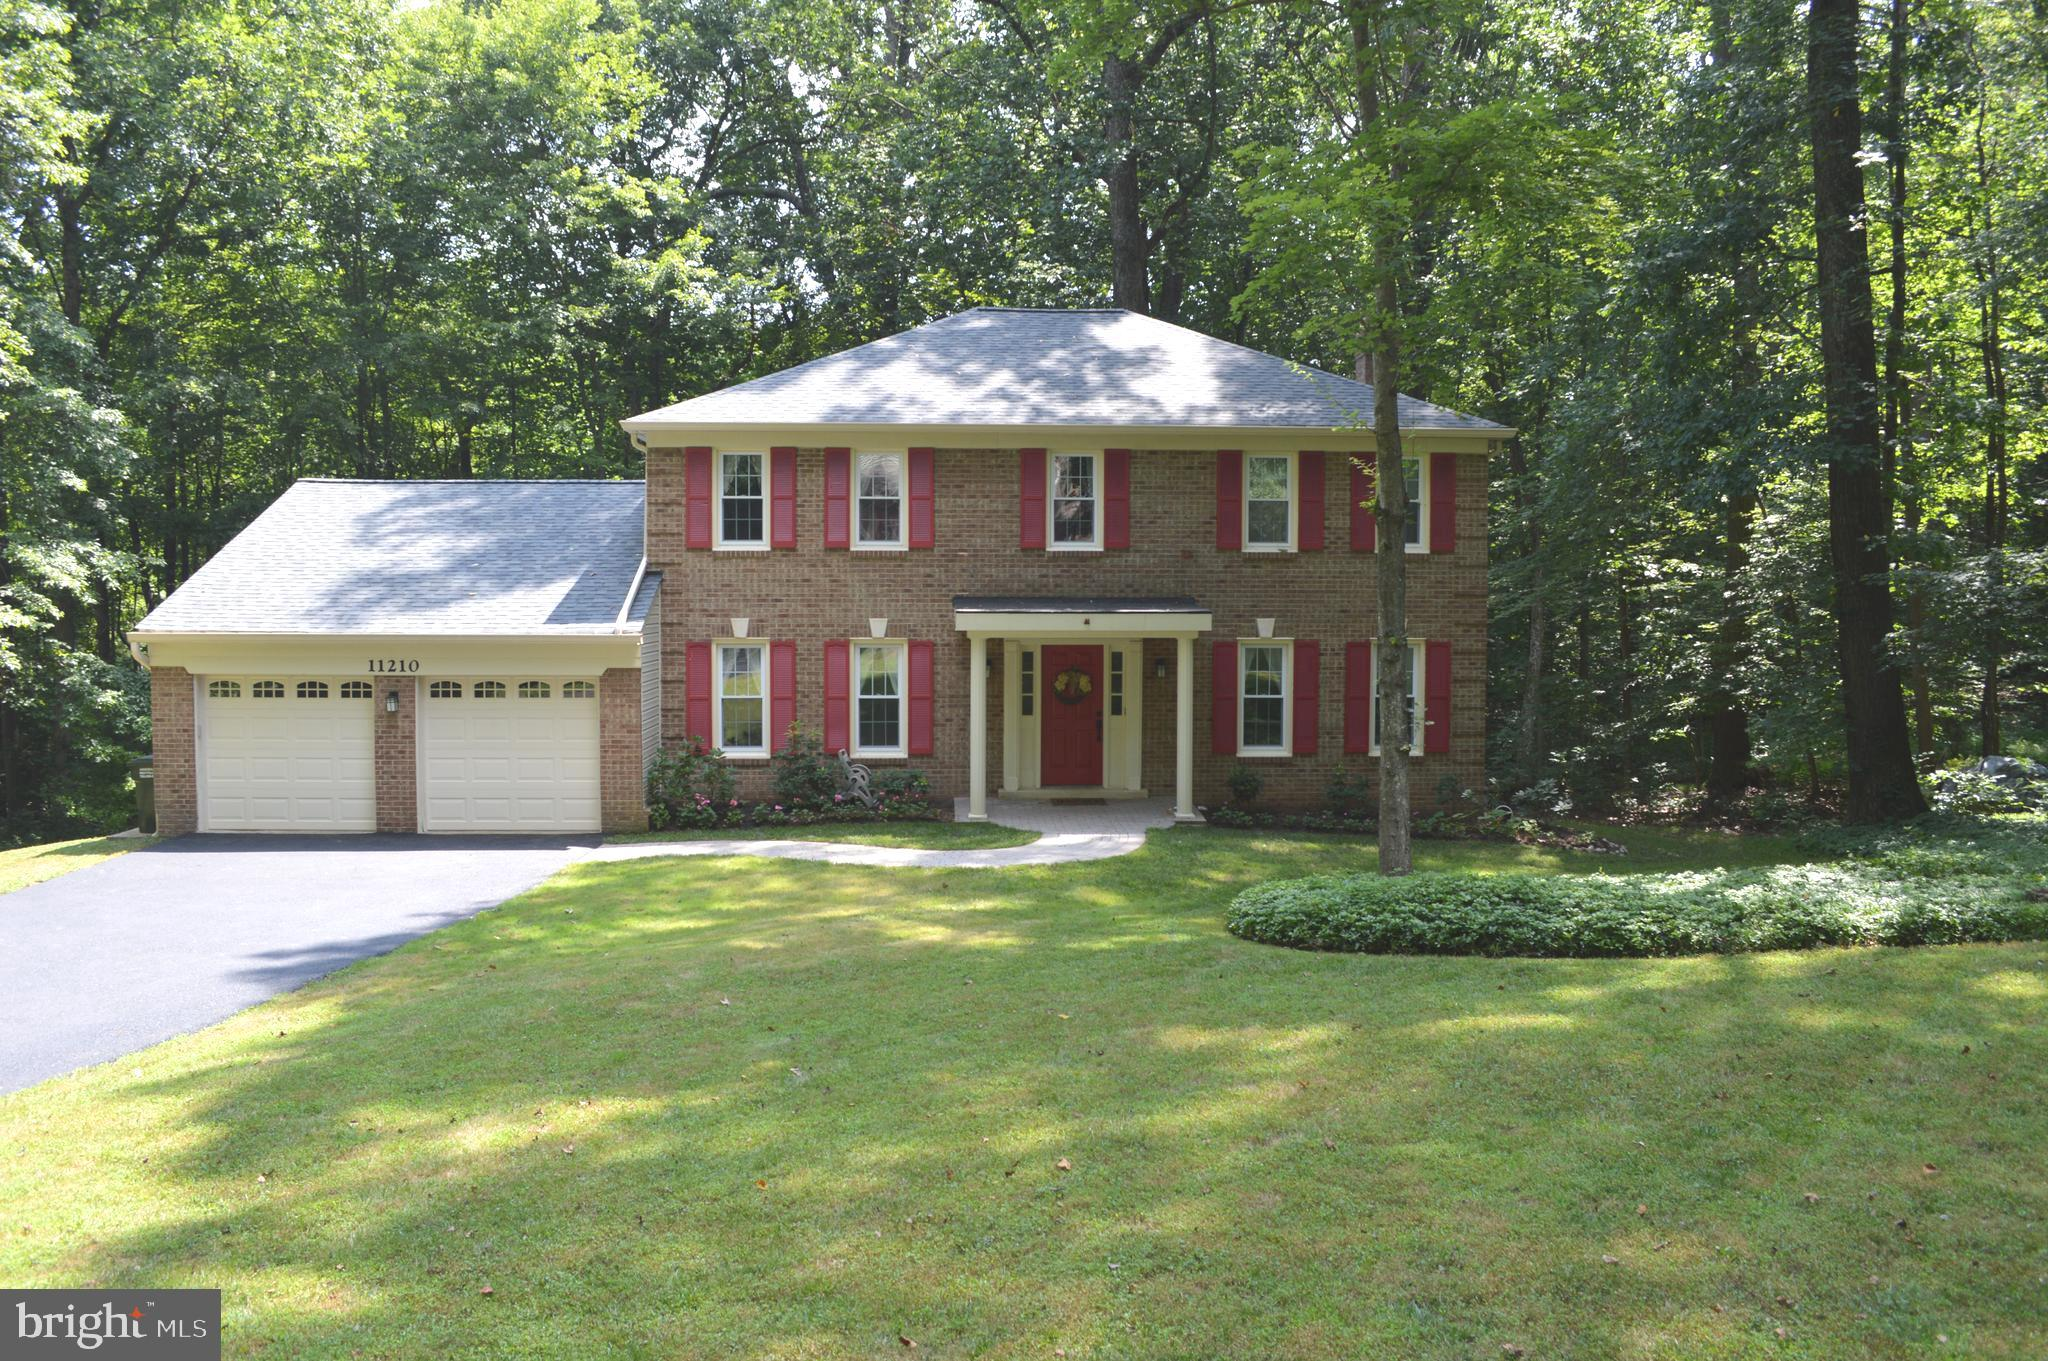 Stunning Brick Front Colonial featuring 5 bedrooms, 3 updated/renovated full bathrooms and 1 half bathroom, sitting on over 1.2 acres in sought after Fairfax Station.  Too many upgrades to list, please see documents section for property features and upgrades.  Owner is Broker/Agent.